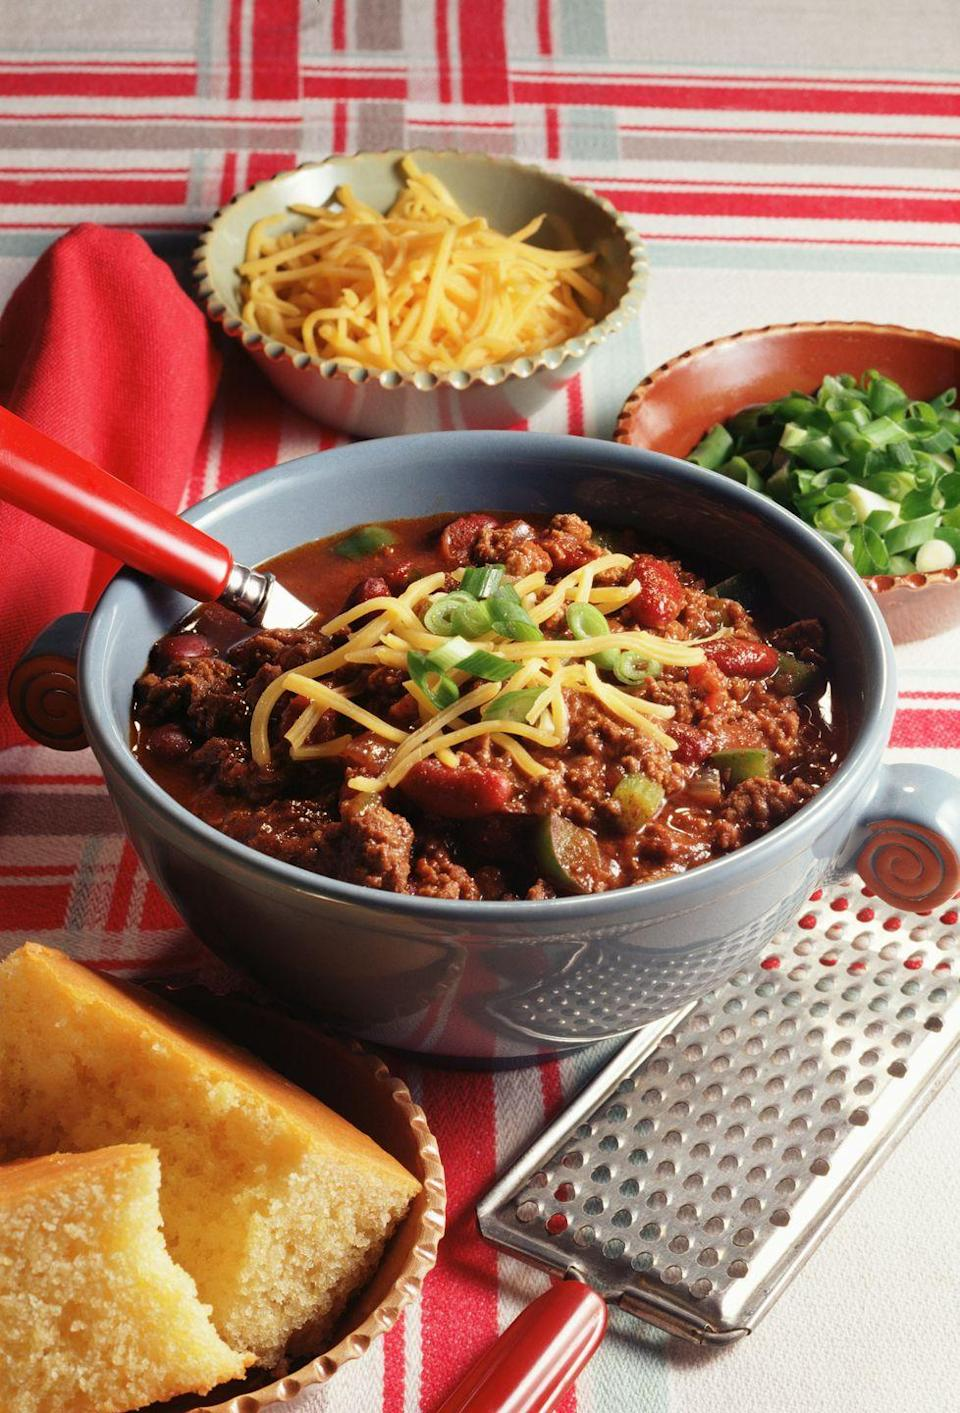 <p>Everybody has a chili recipe they swear by. Put yours to the test by hosting friends for a rollicking chili cook-off, grading entries on things like presentation, smell, creativity, and—of course—best tasting.</p>